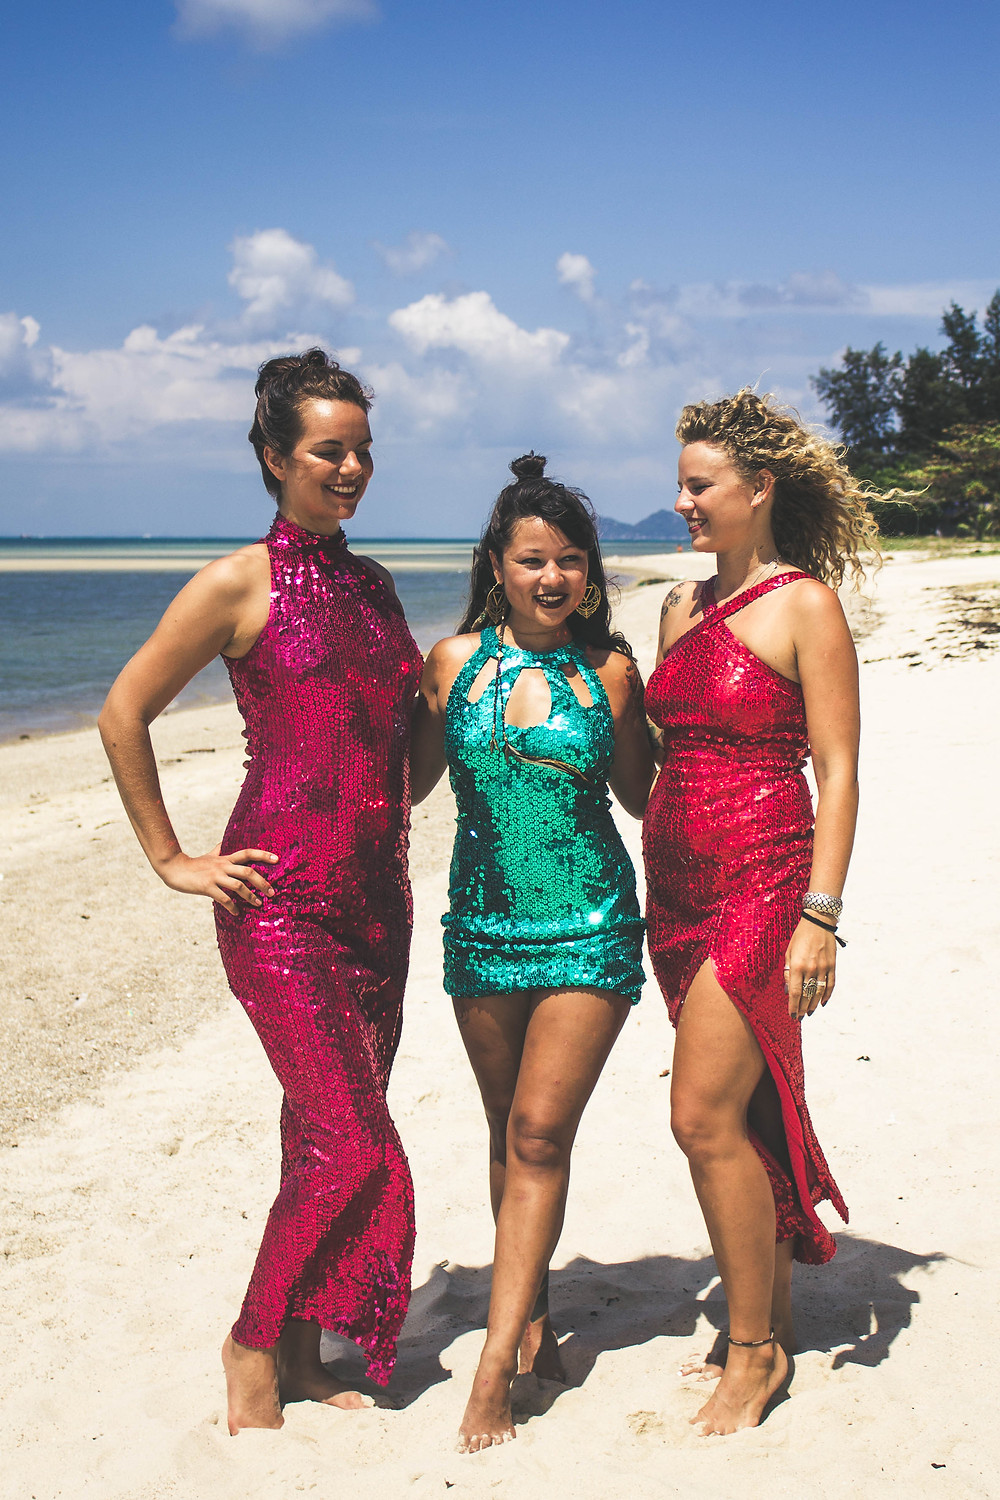 lady jane bristol sequin playsuit beach lookbook campaign under a palm tree photography sequin dresses